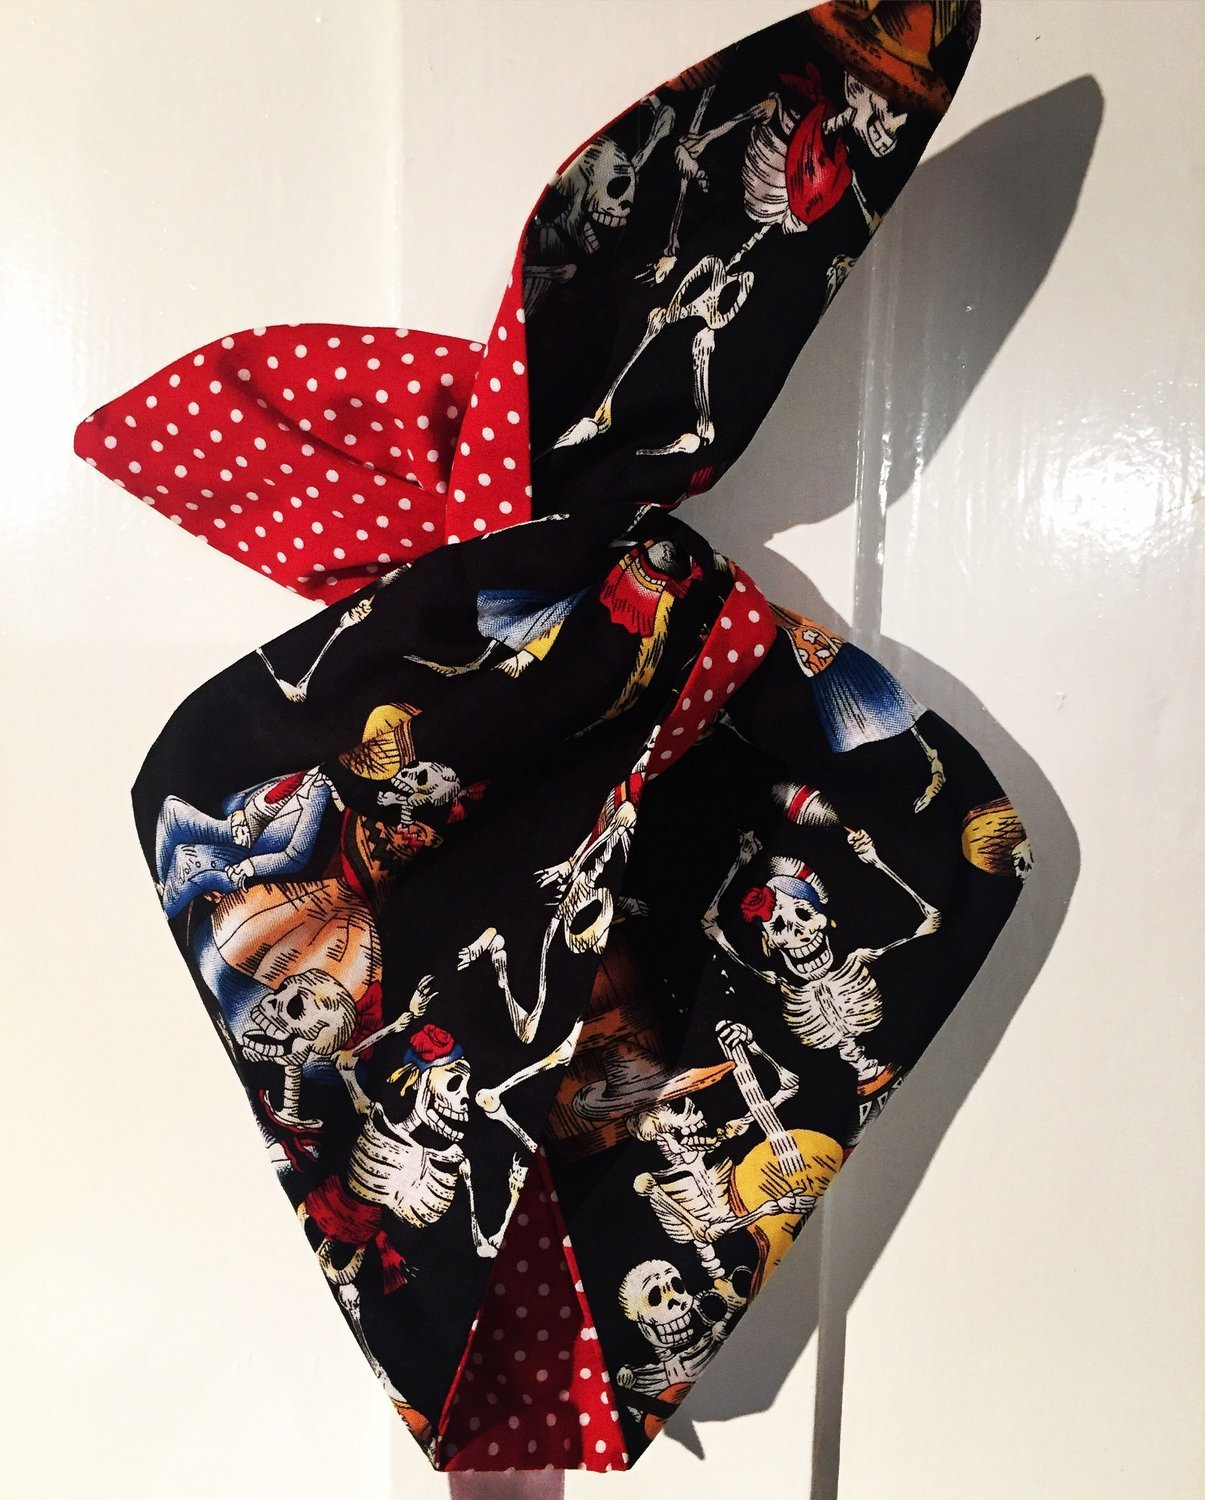 Day of the dead dancing skeletons with red polka wired hairband